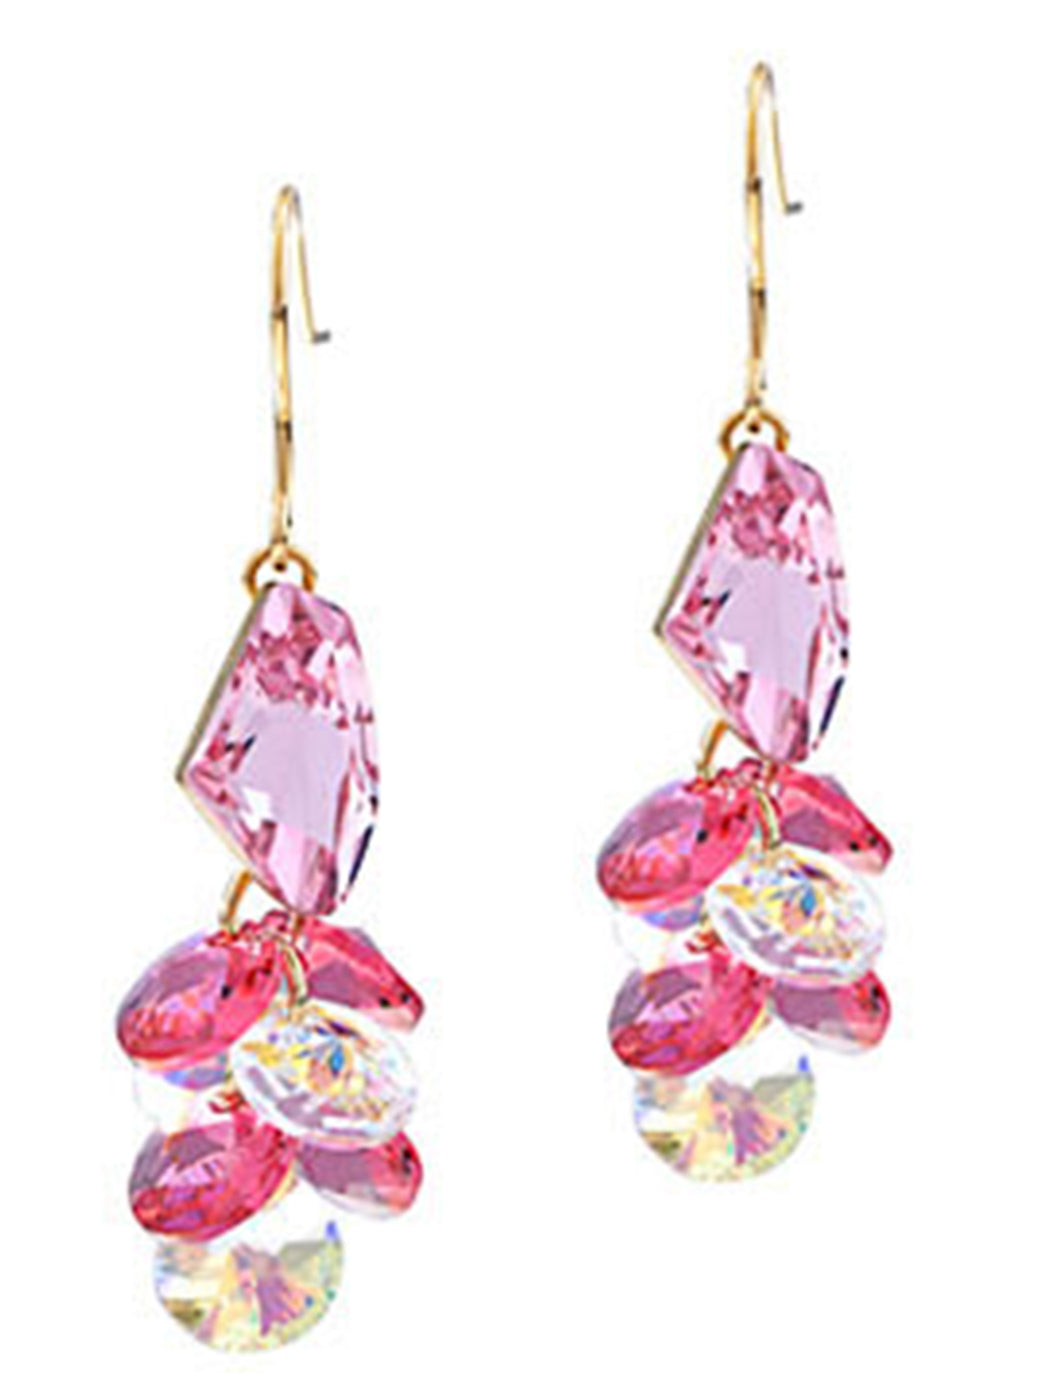 Swarovski Crystal Element Silver Rose Pink Colored Cluster Gems Fish Hook Dangle Earrings